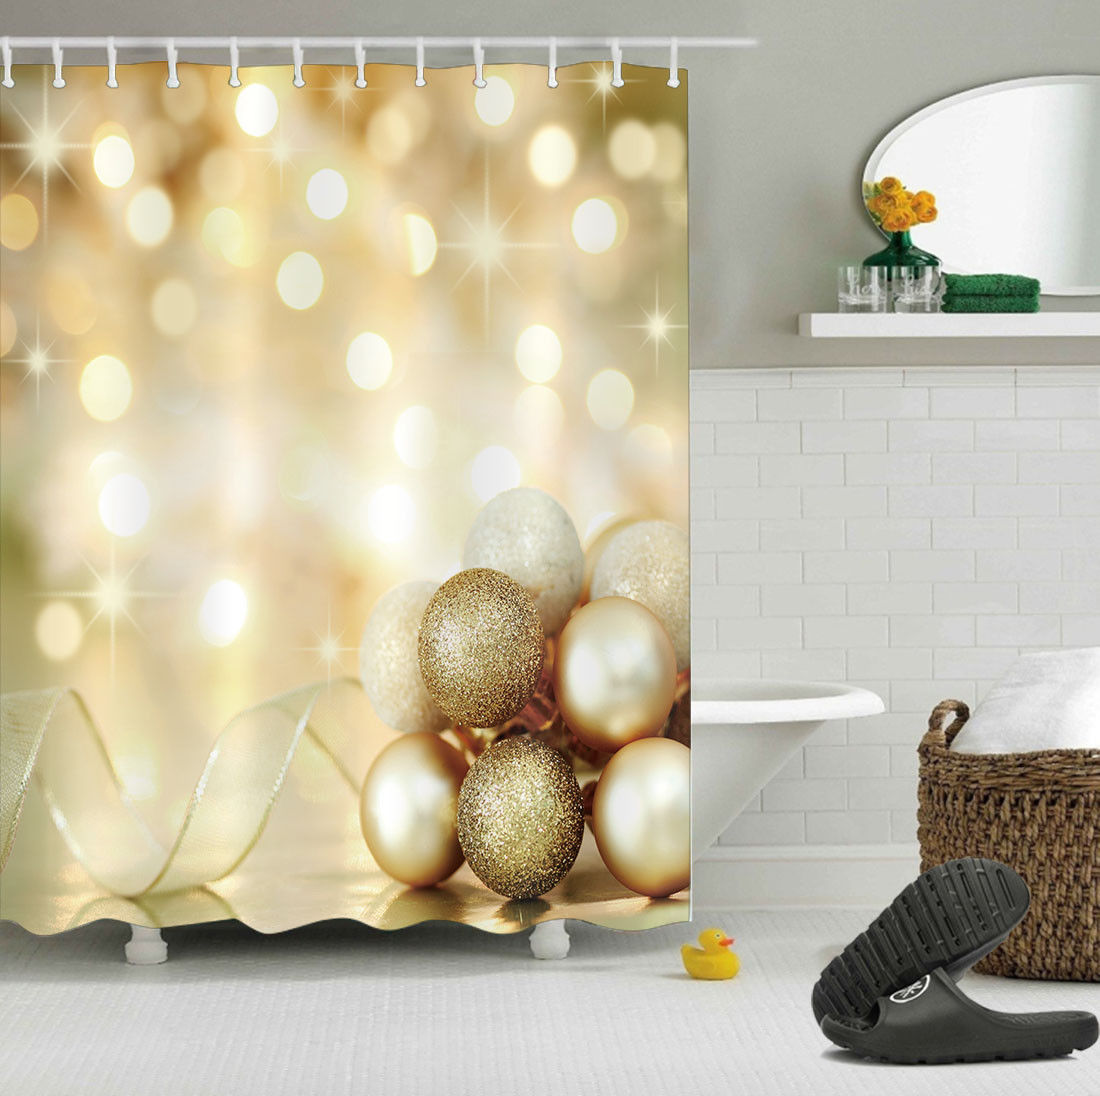 christmas shower curtains at bed bath and beyond - Bed Bath And Beyond Christmas Decorations